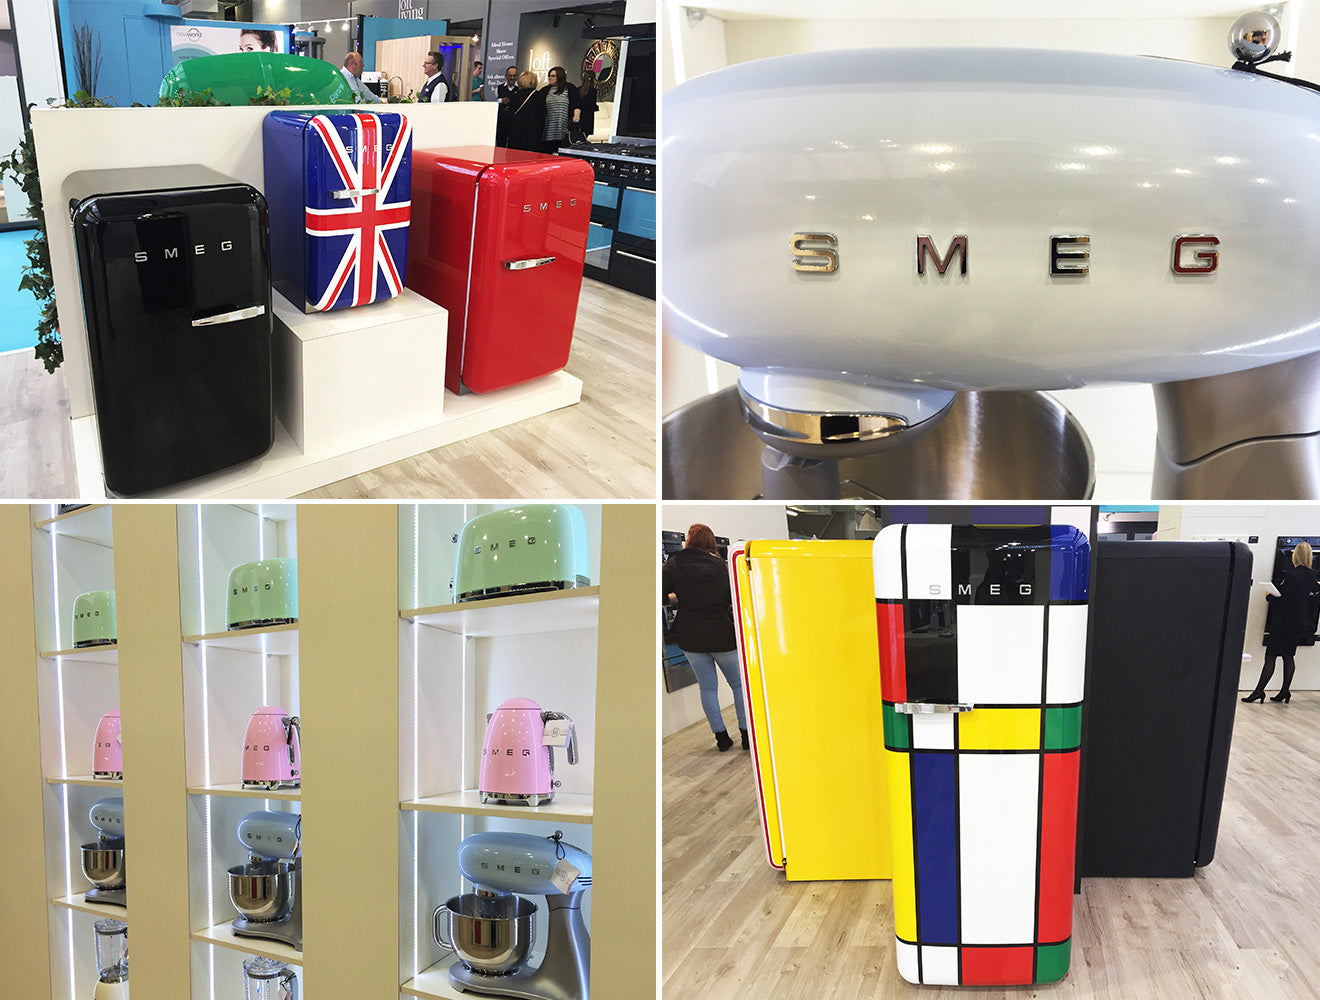 Smeg Uk stand at the Ideal Home Show 2016